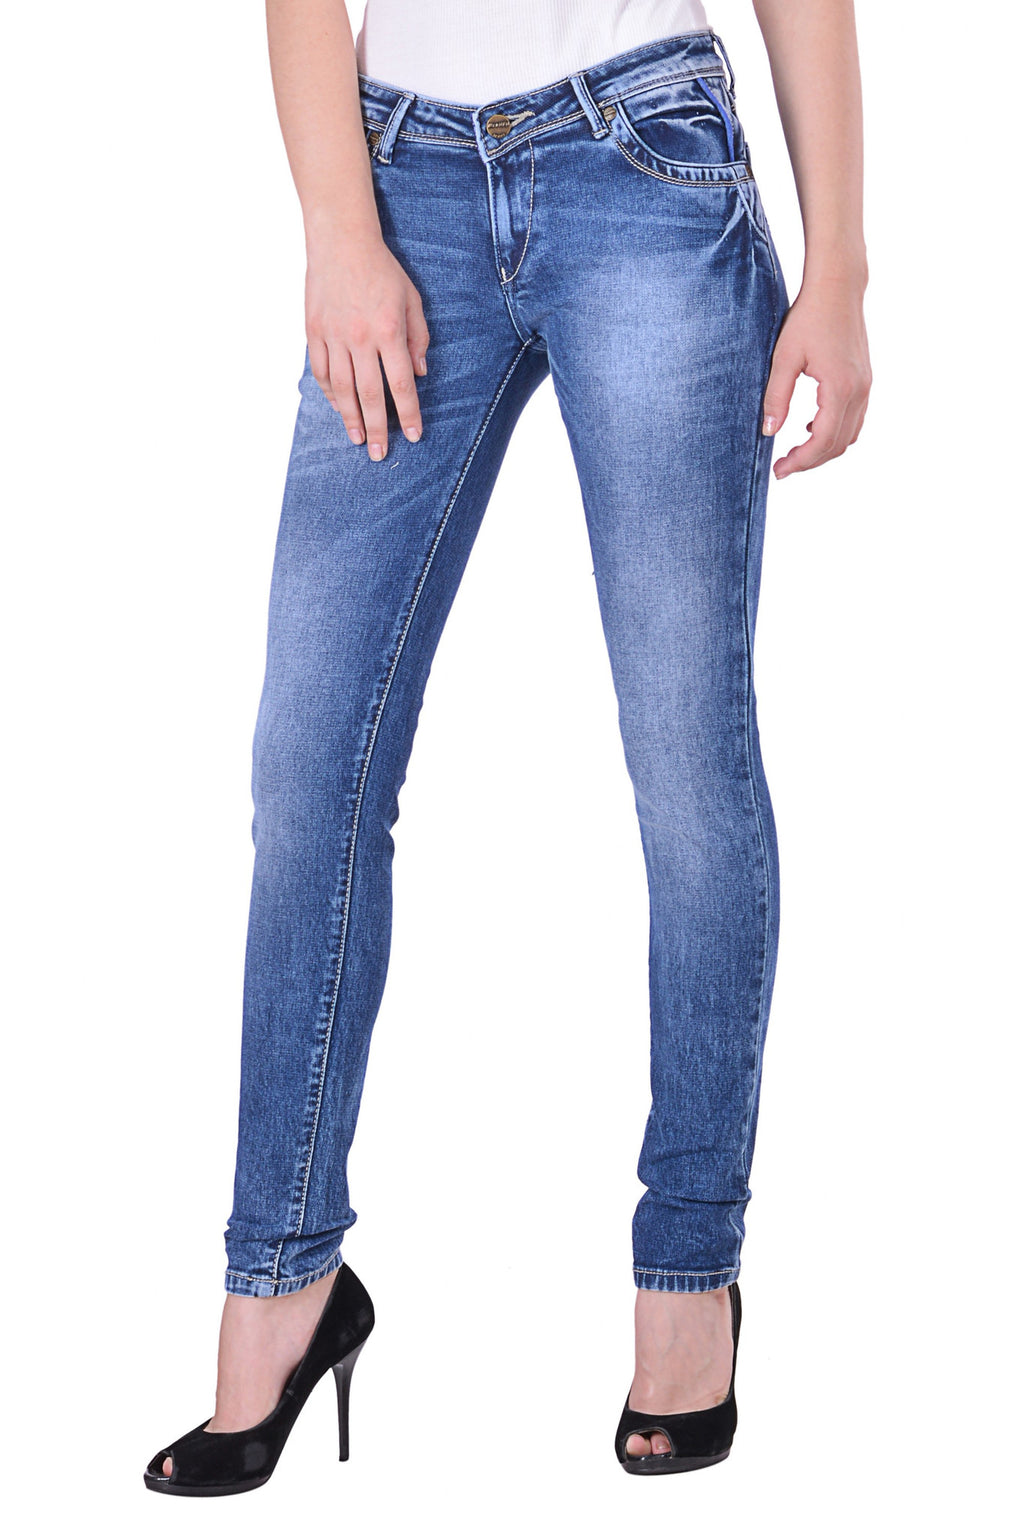 Hoffmen Slim Fit Women's Blue Jeans  MSB1202